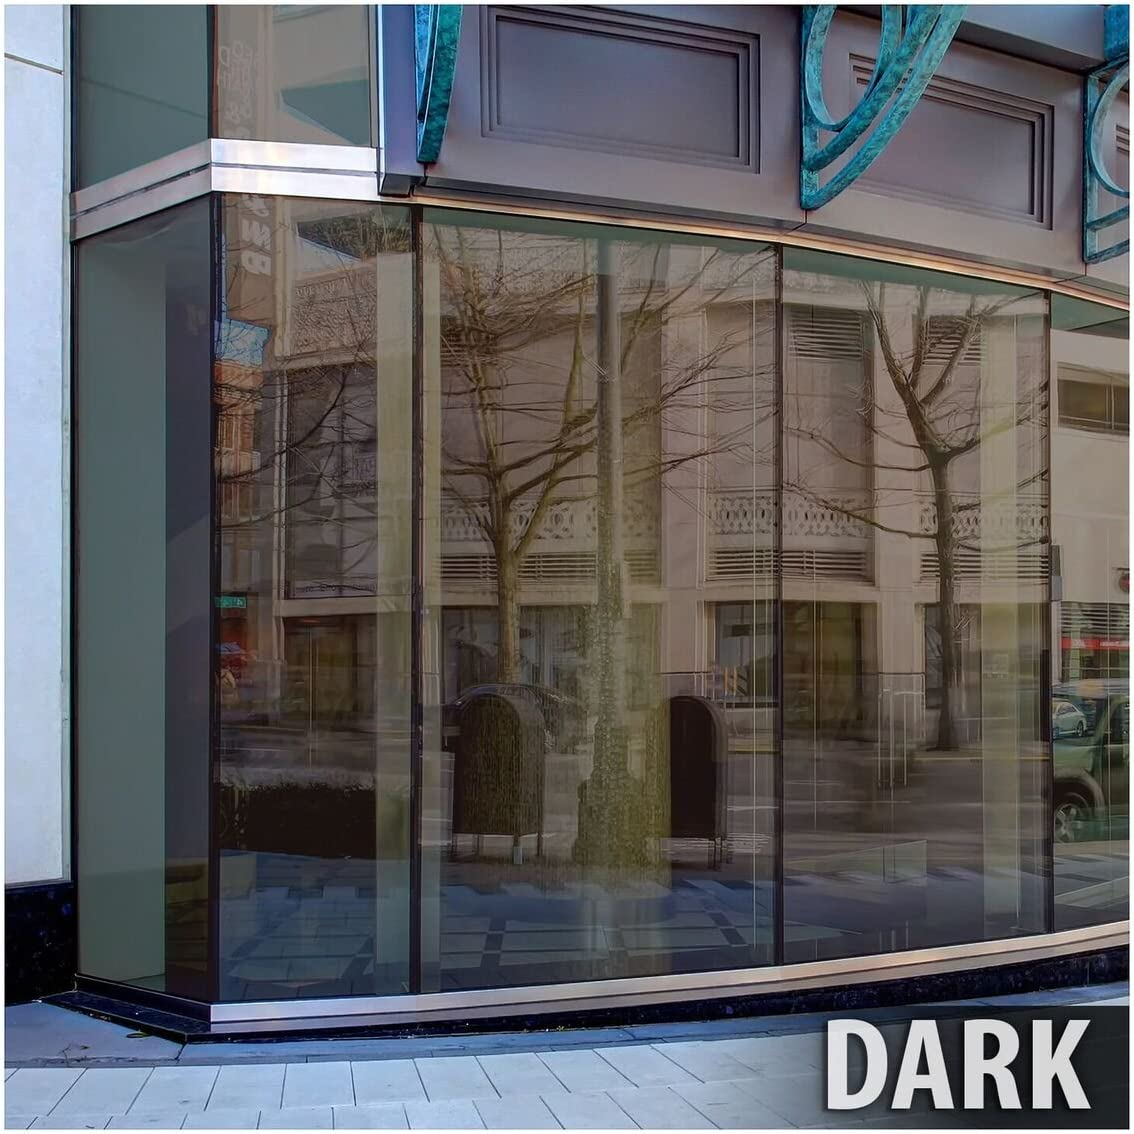 BDF BRZ20 Window Film Bronze Reflective Sun Control and Privacy Dark – 60in X 100ft